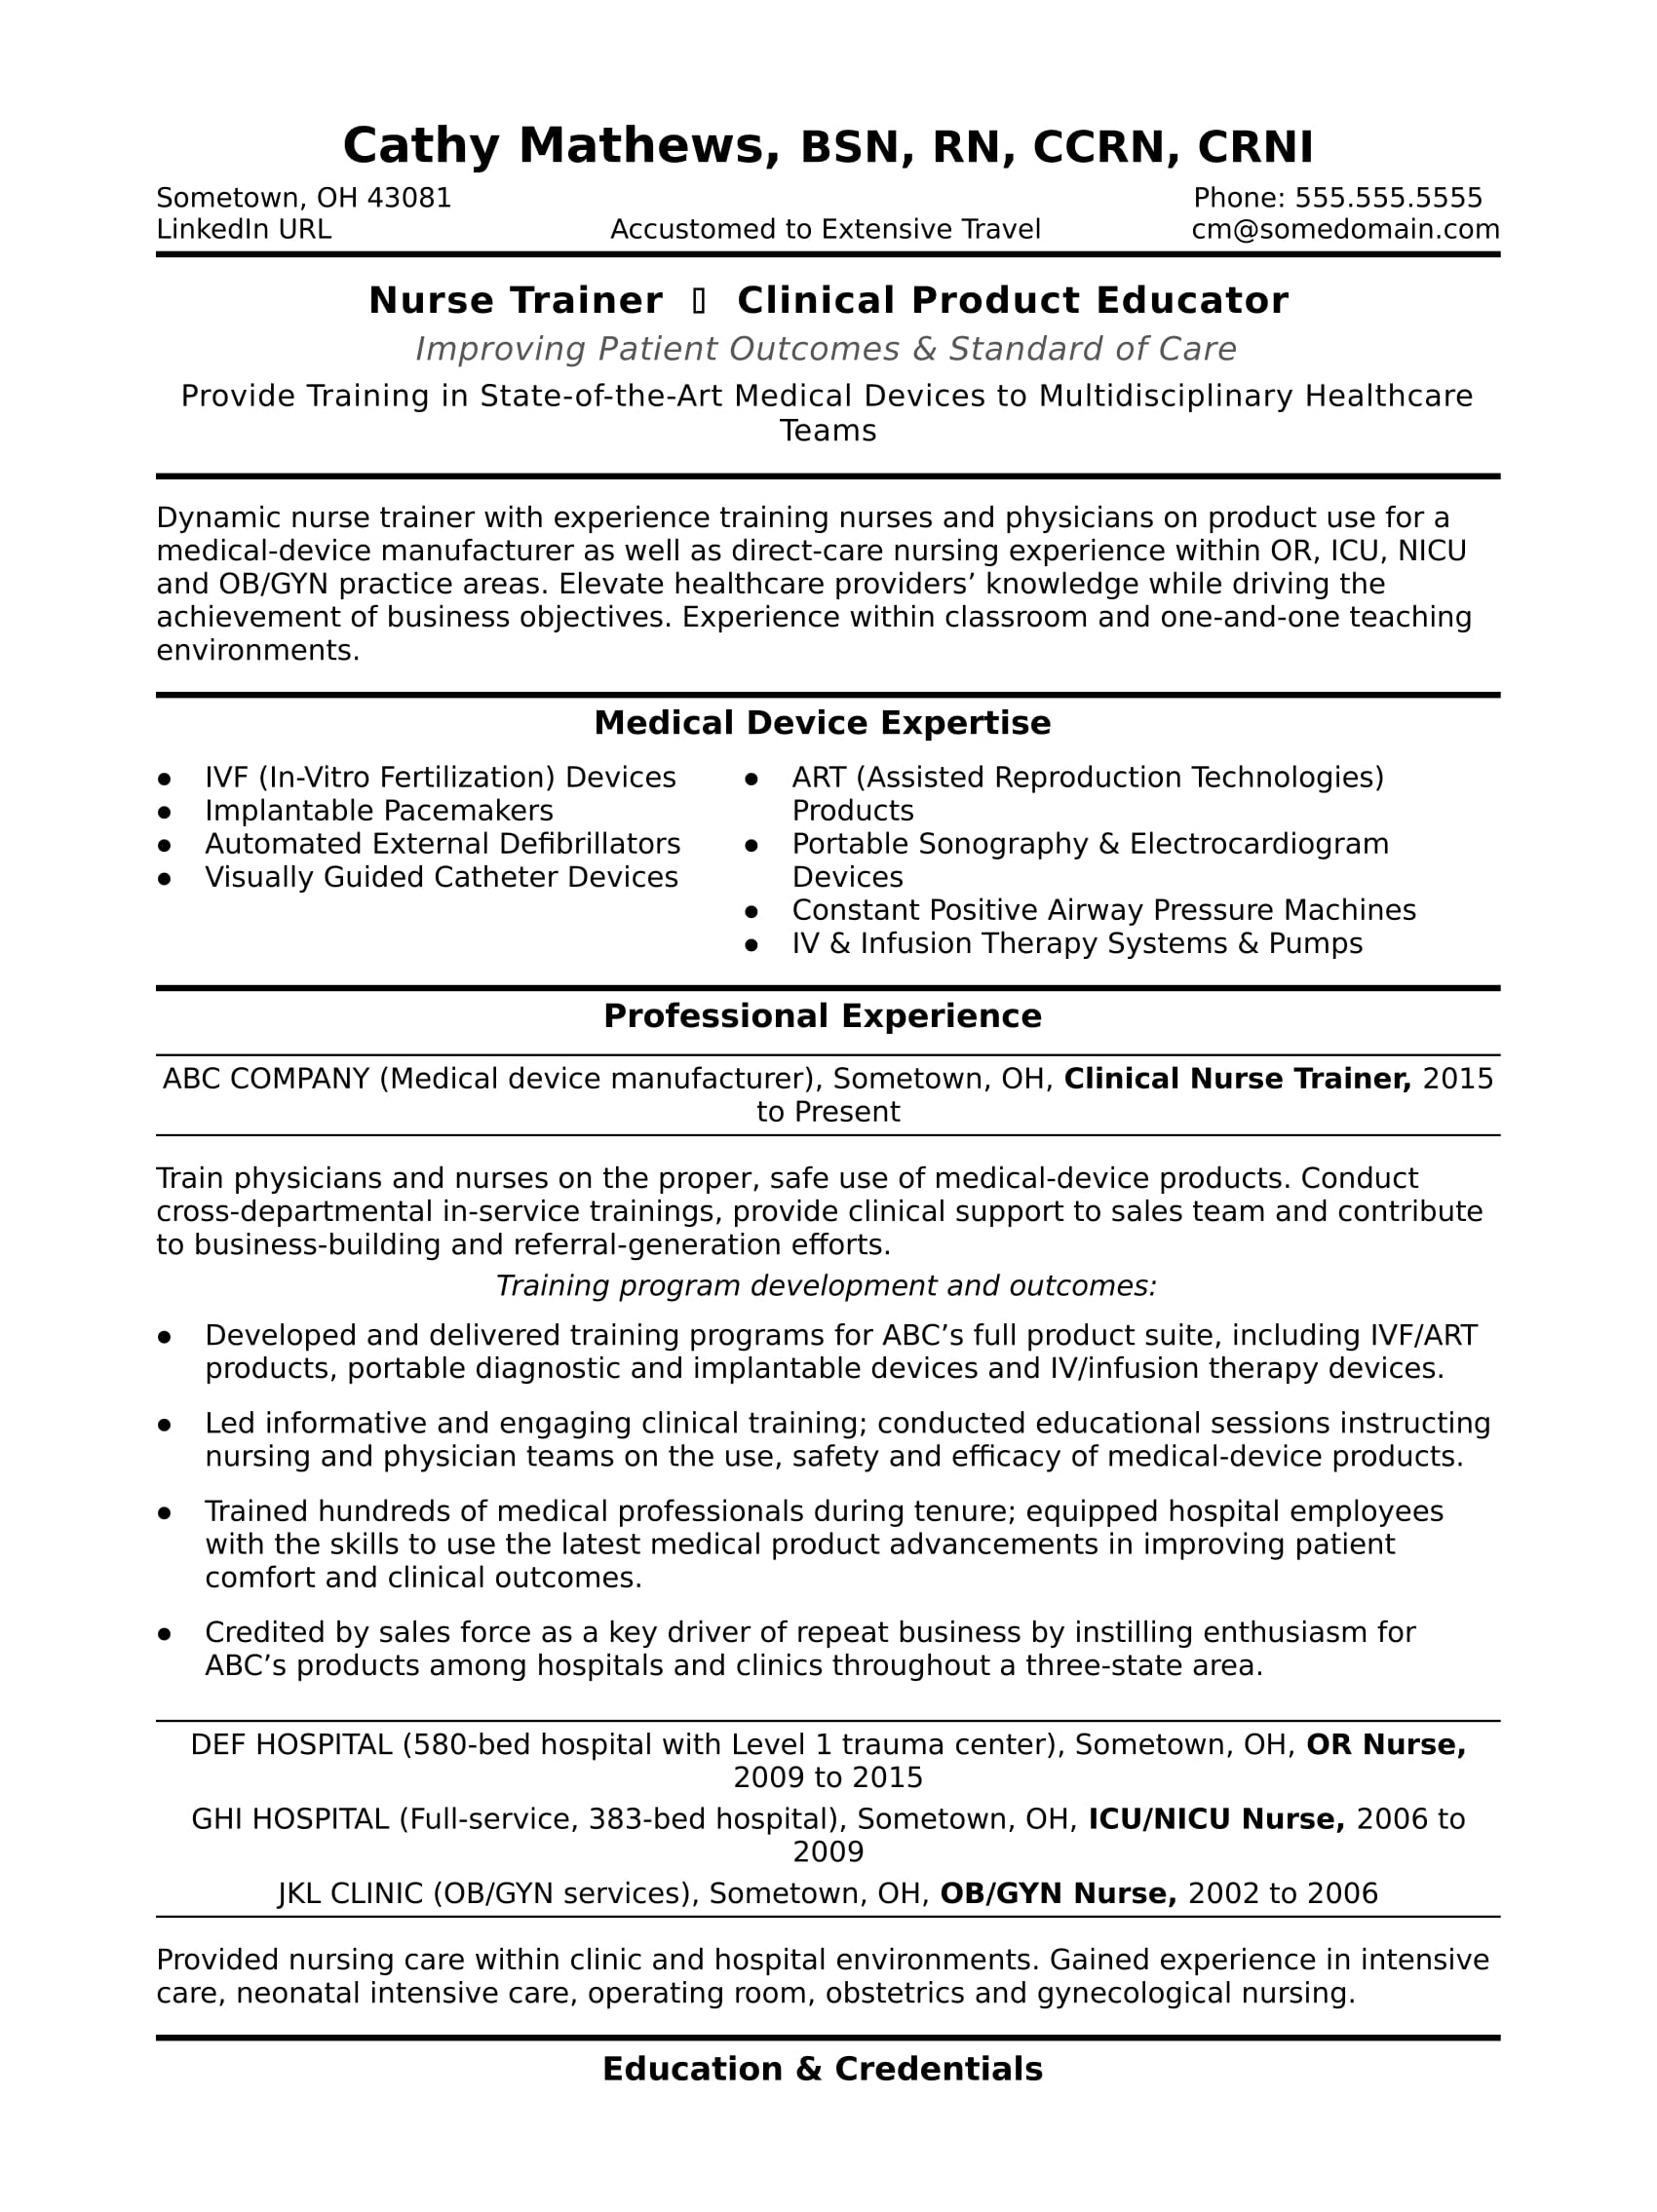 nurse trainer resume sample